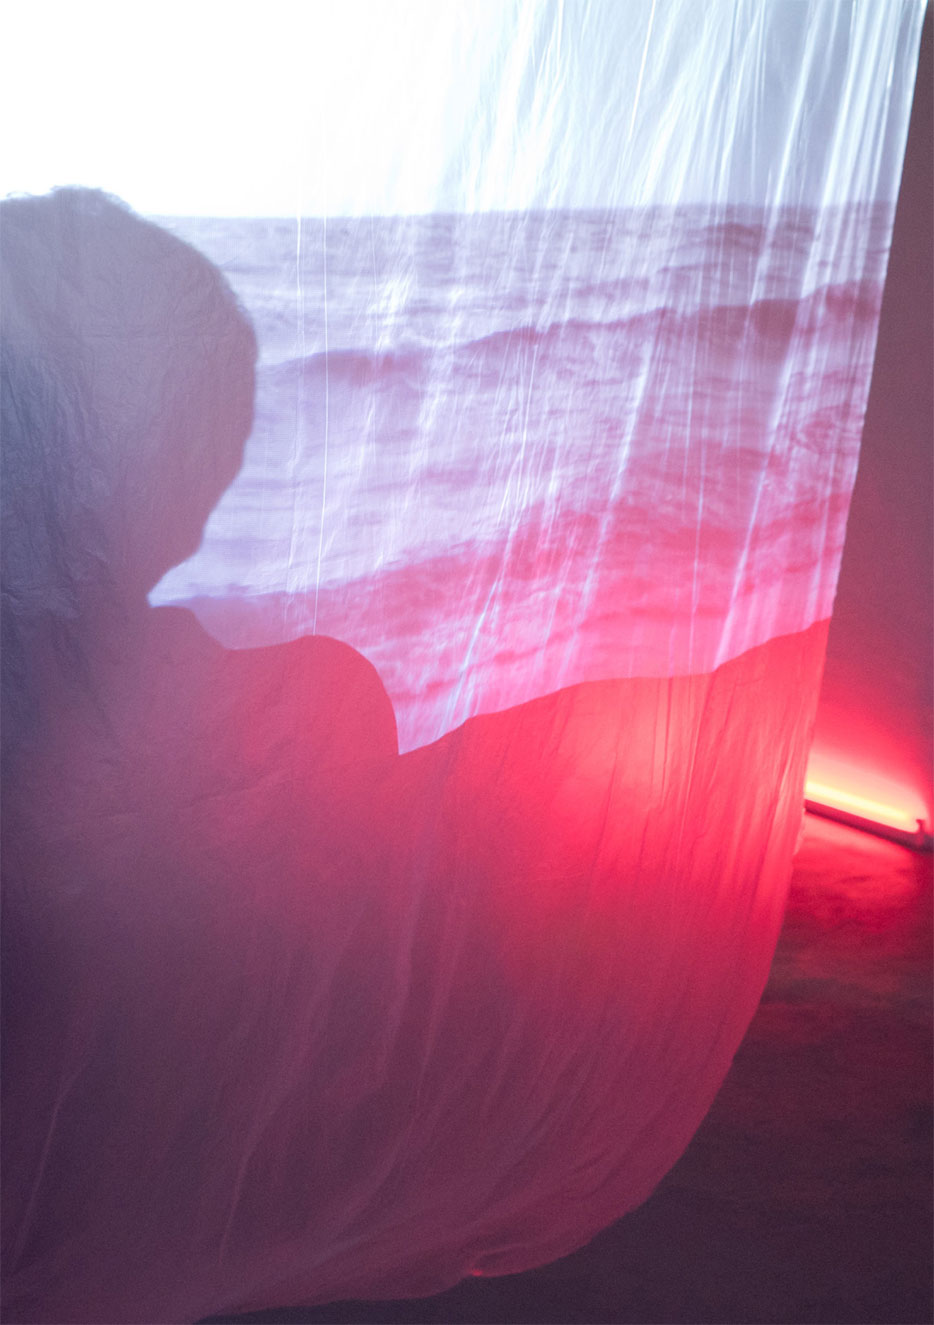 Photo by Dalia Mikonytė